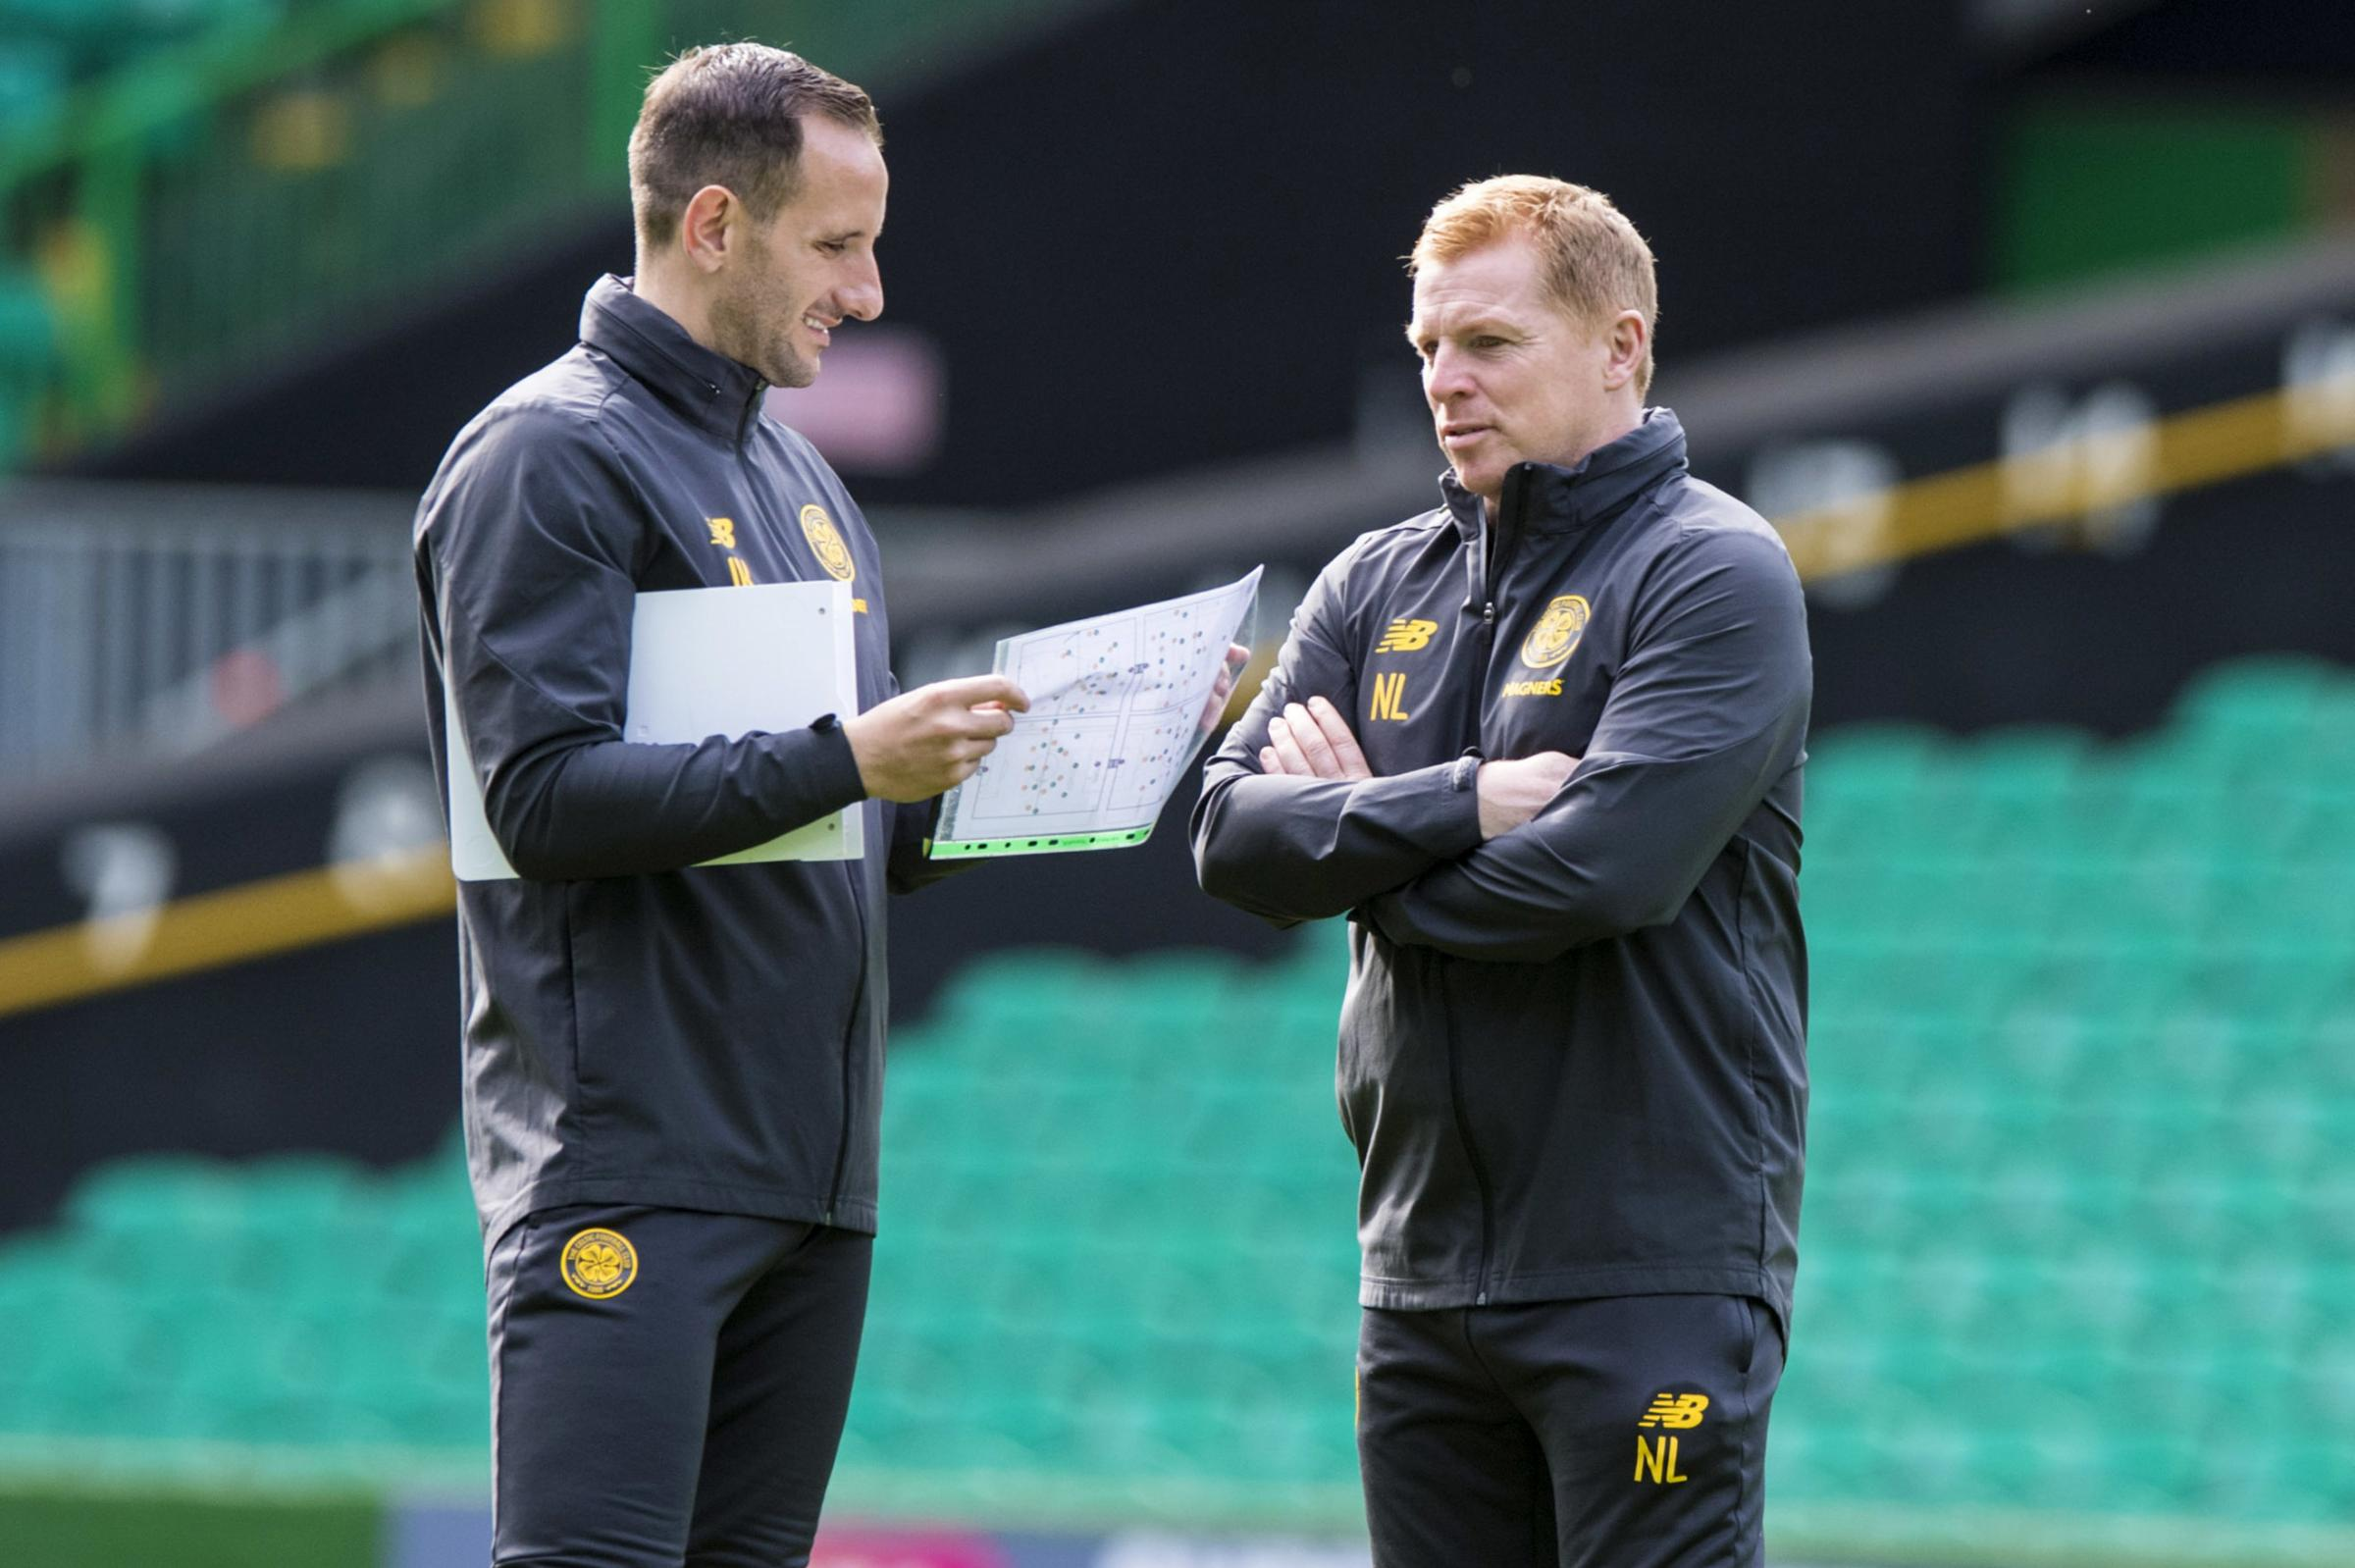 Neil Lennon says John Kennedy will be going nowhere amid reports of Hibs interest in Celtic's number two